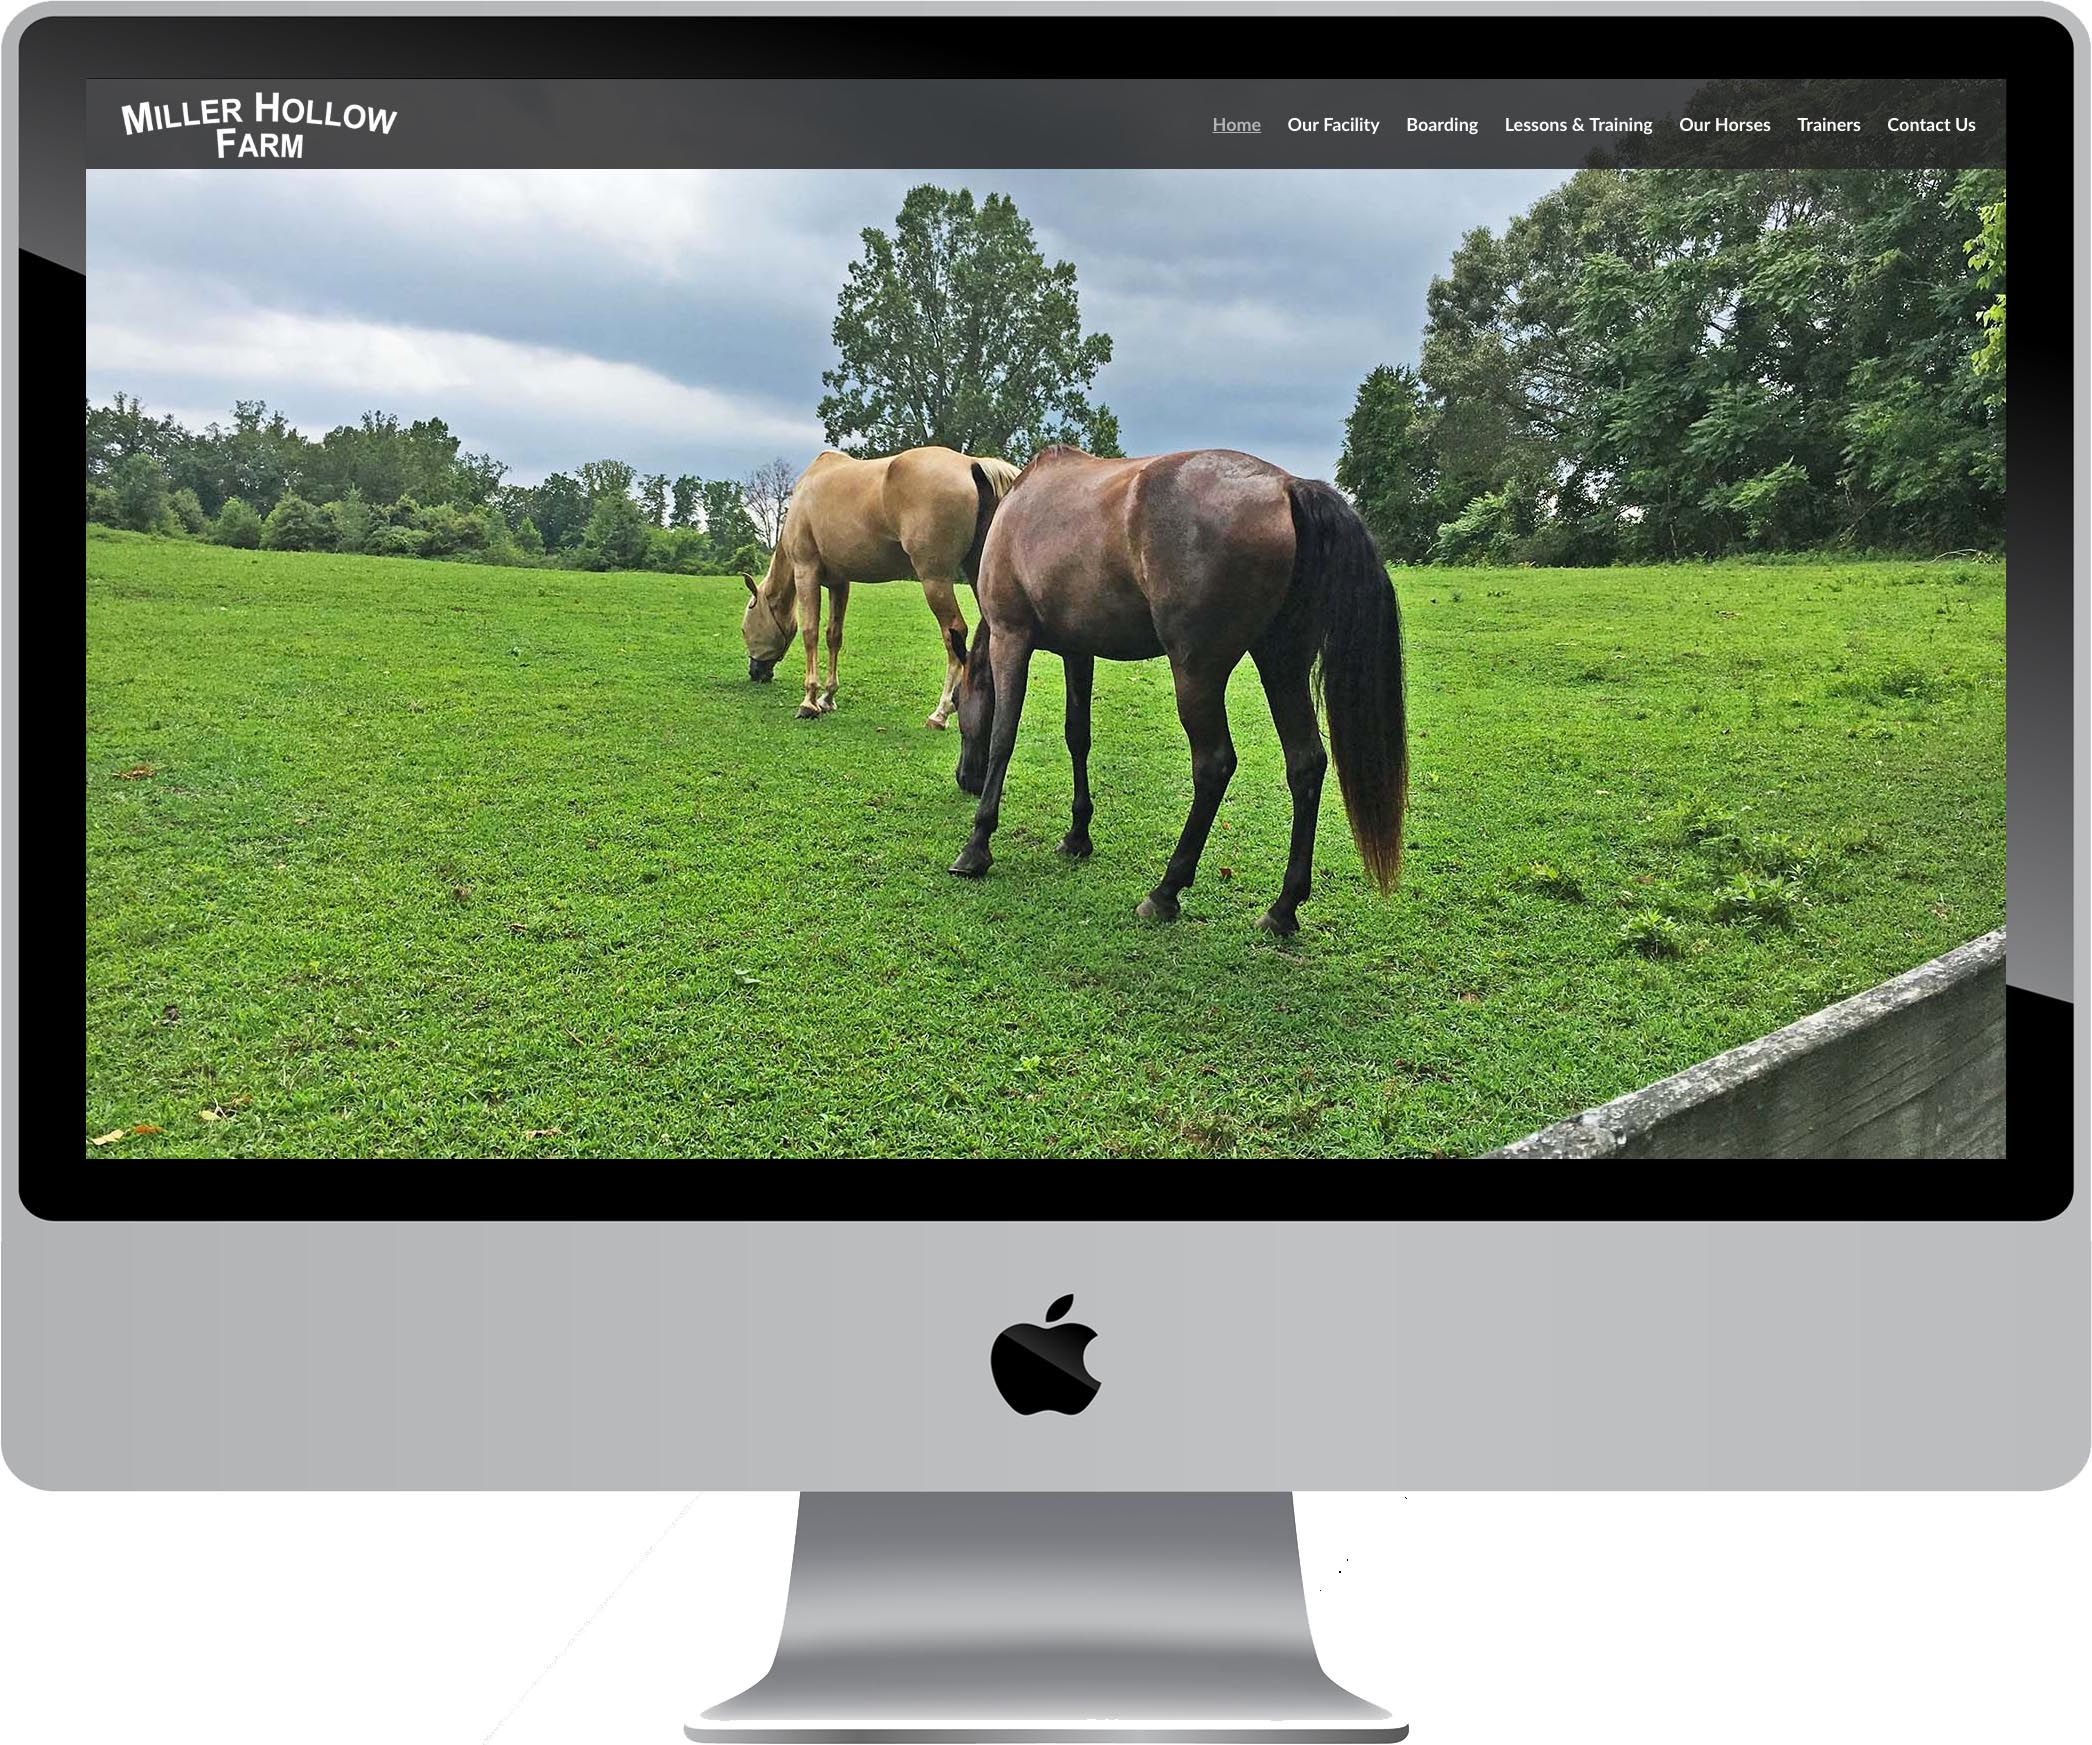 Miller Hollow Farm Responsive Web Design